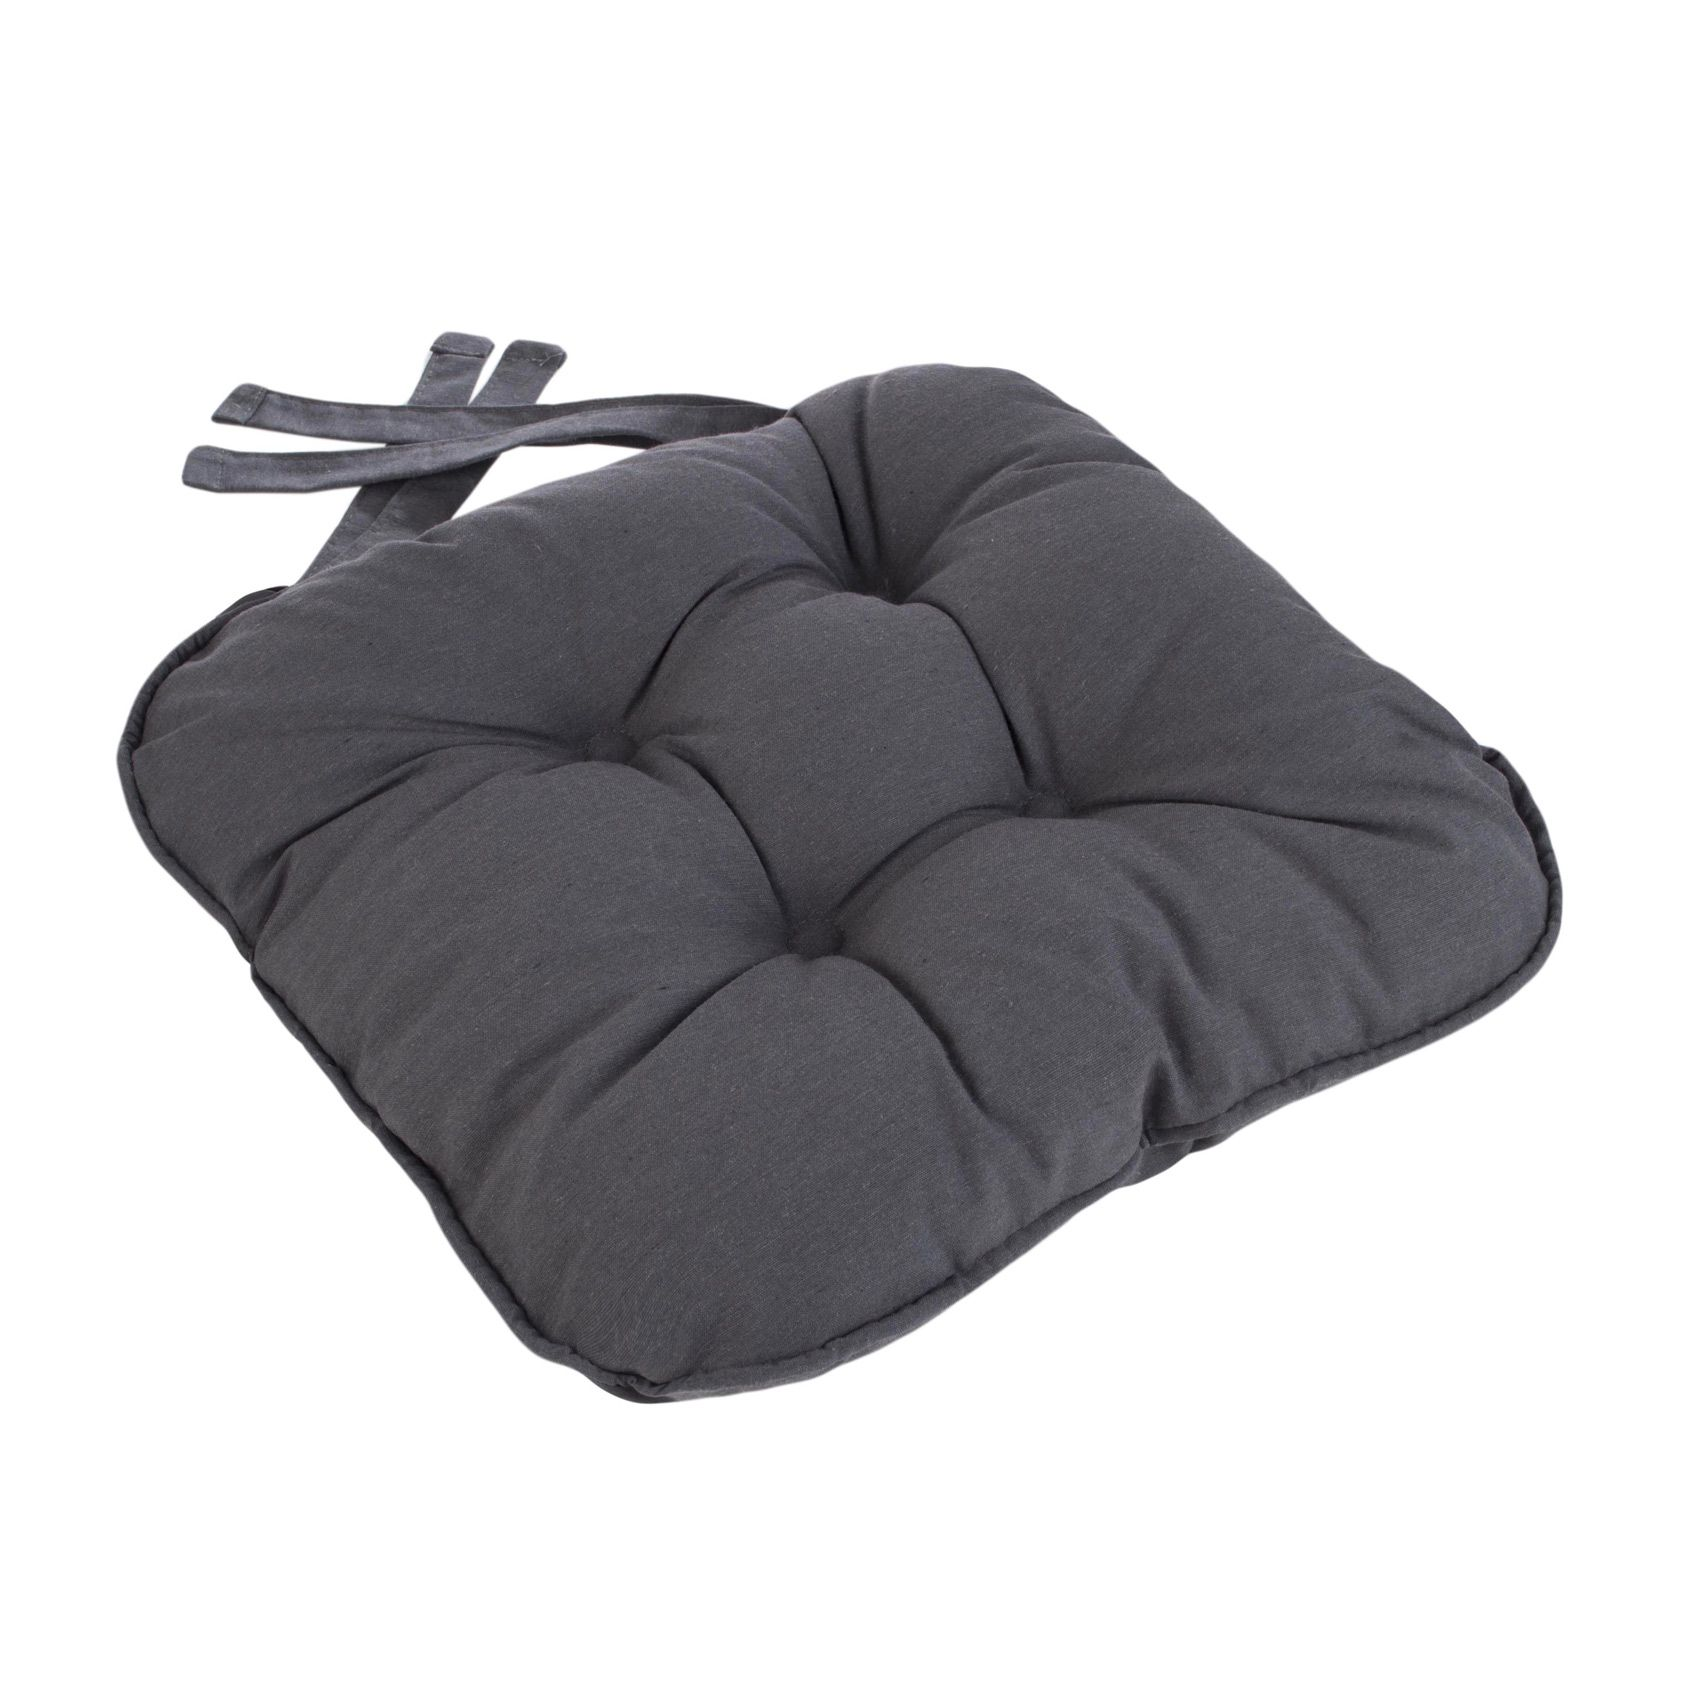 Eton Piped Chunky Seat Pad Cushion Grey Charcoal Kitchen Cushions